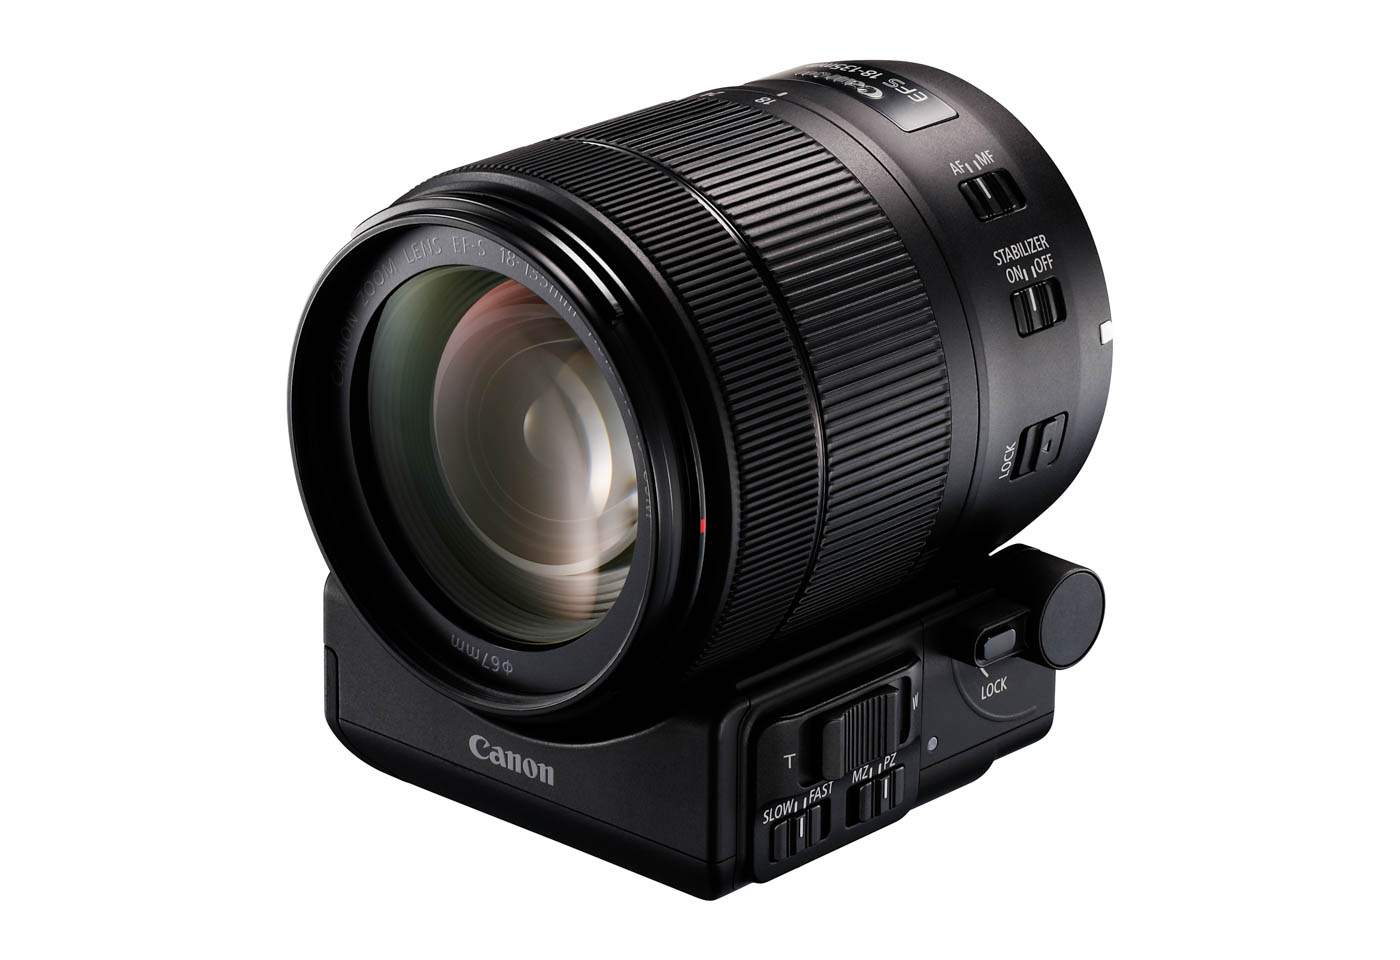 Canon EFS18-135 IS USM lens